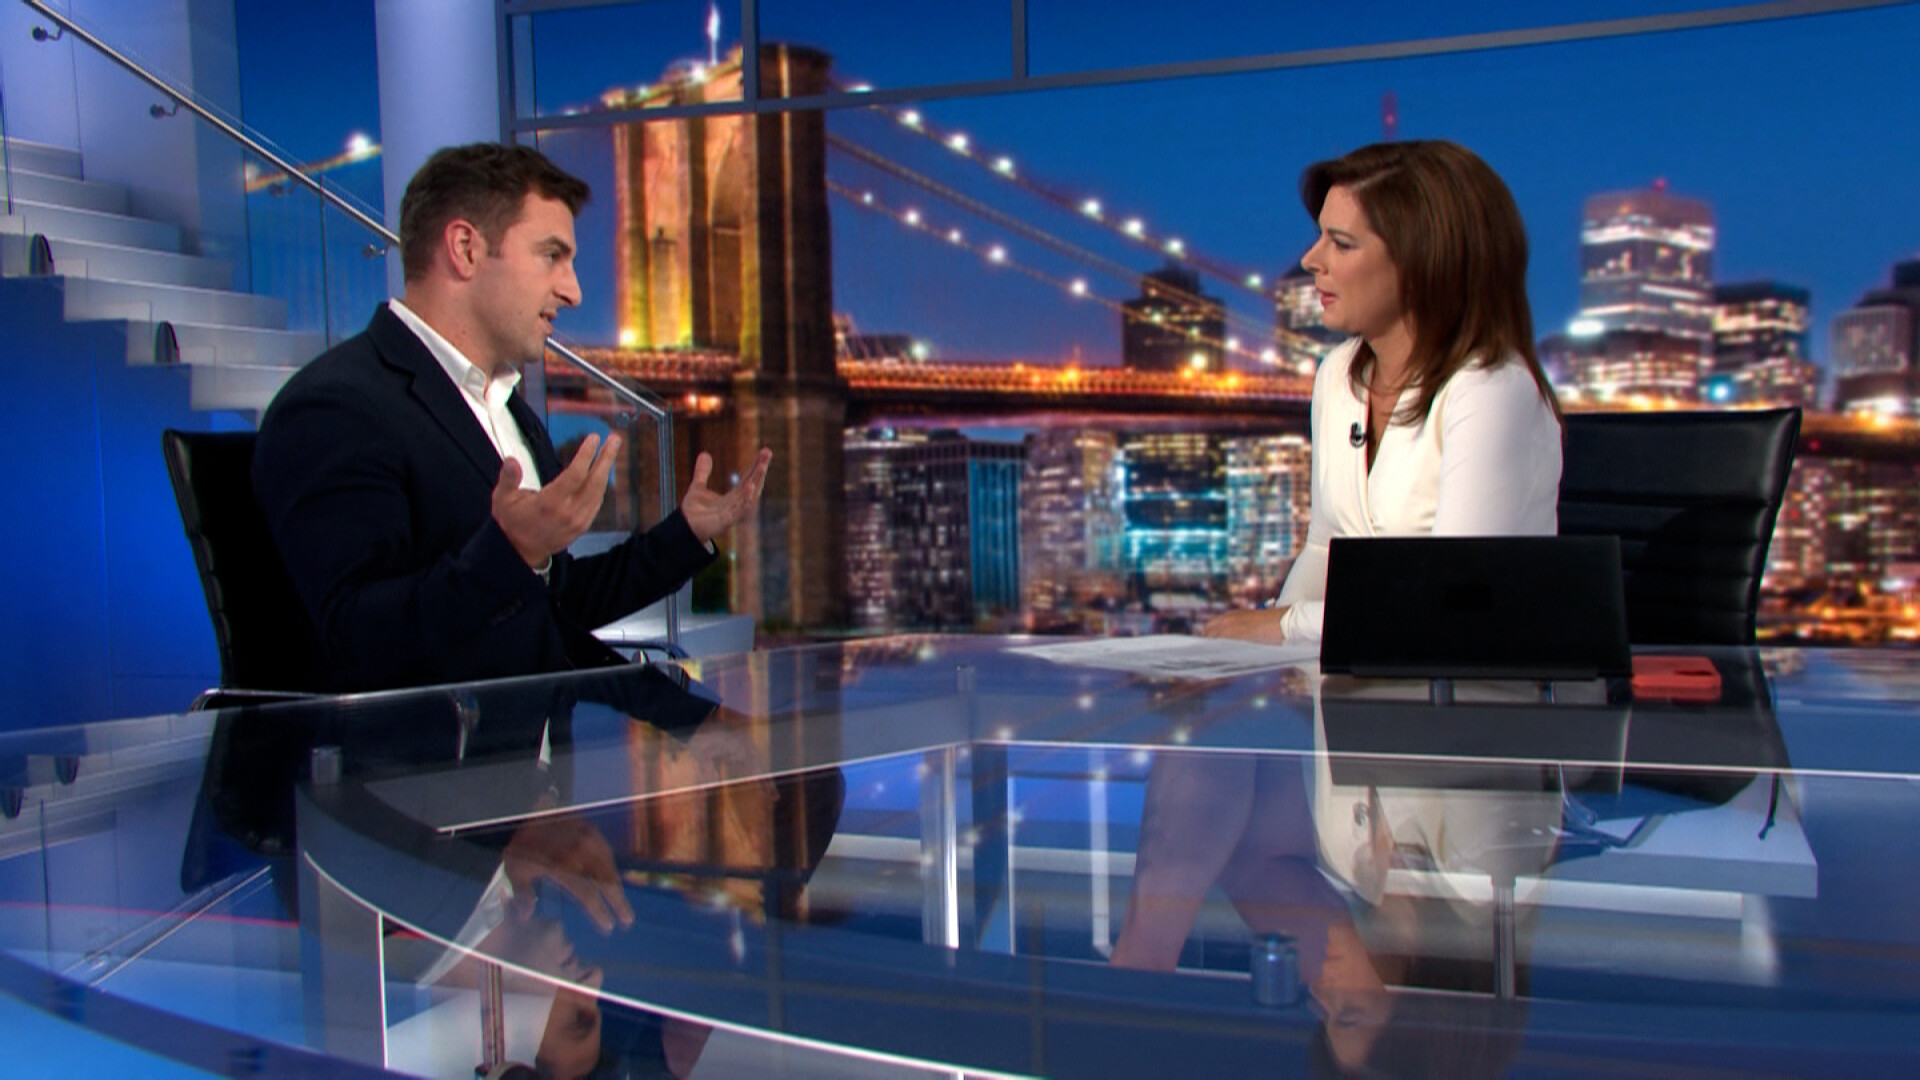 Airbnb CEO: We had to rebuild our company from the ground up